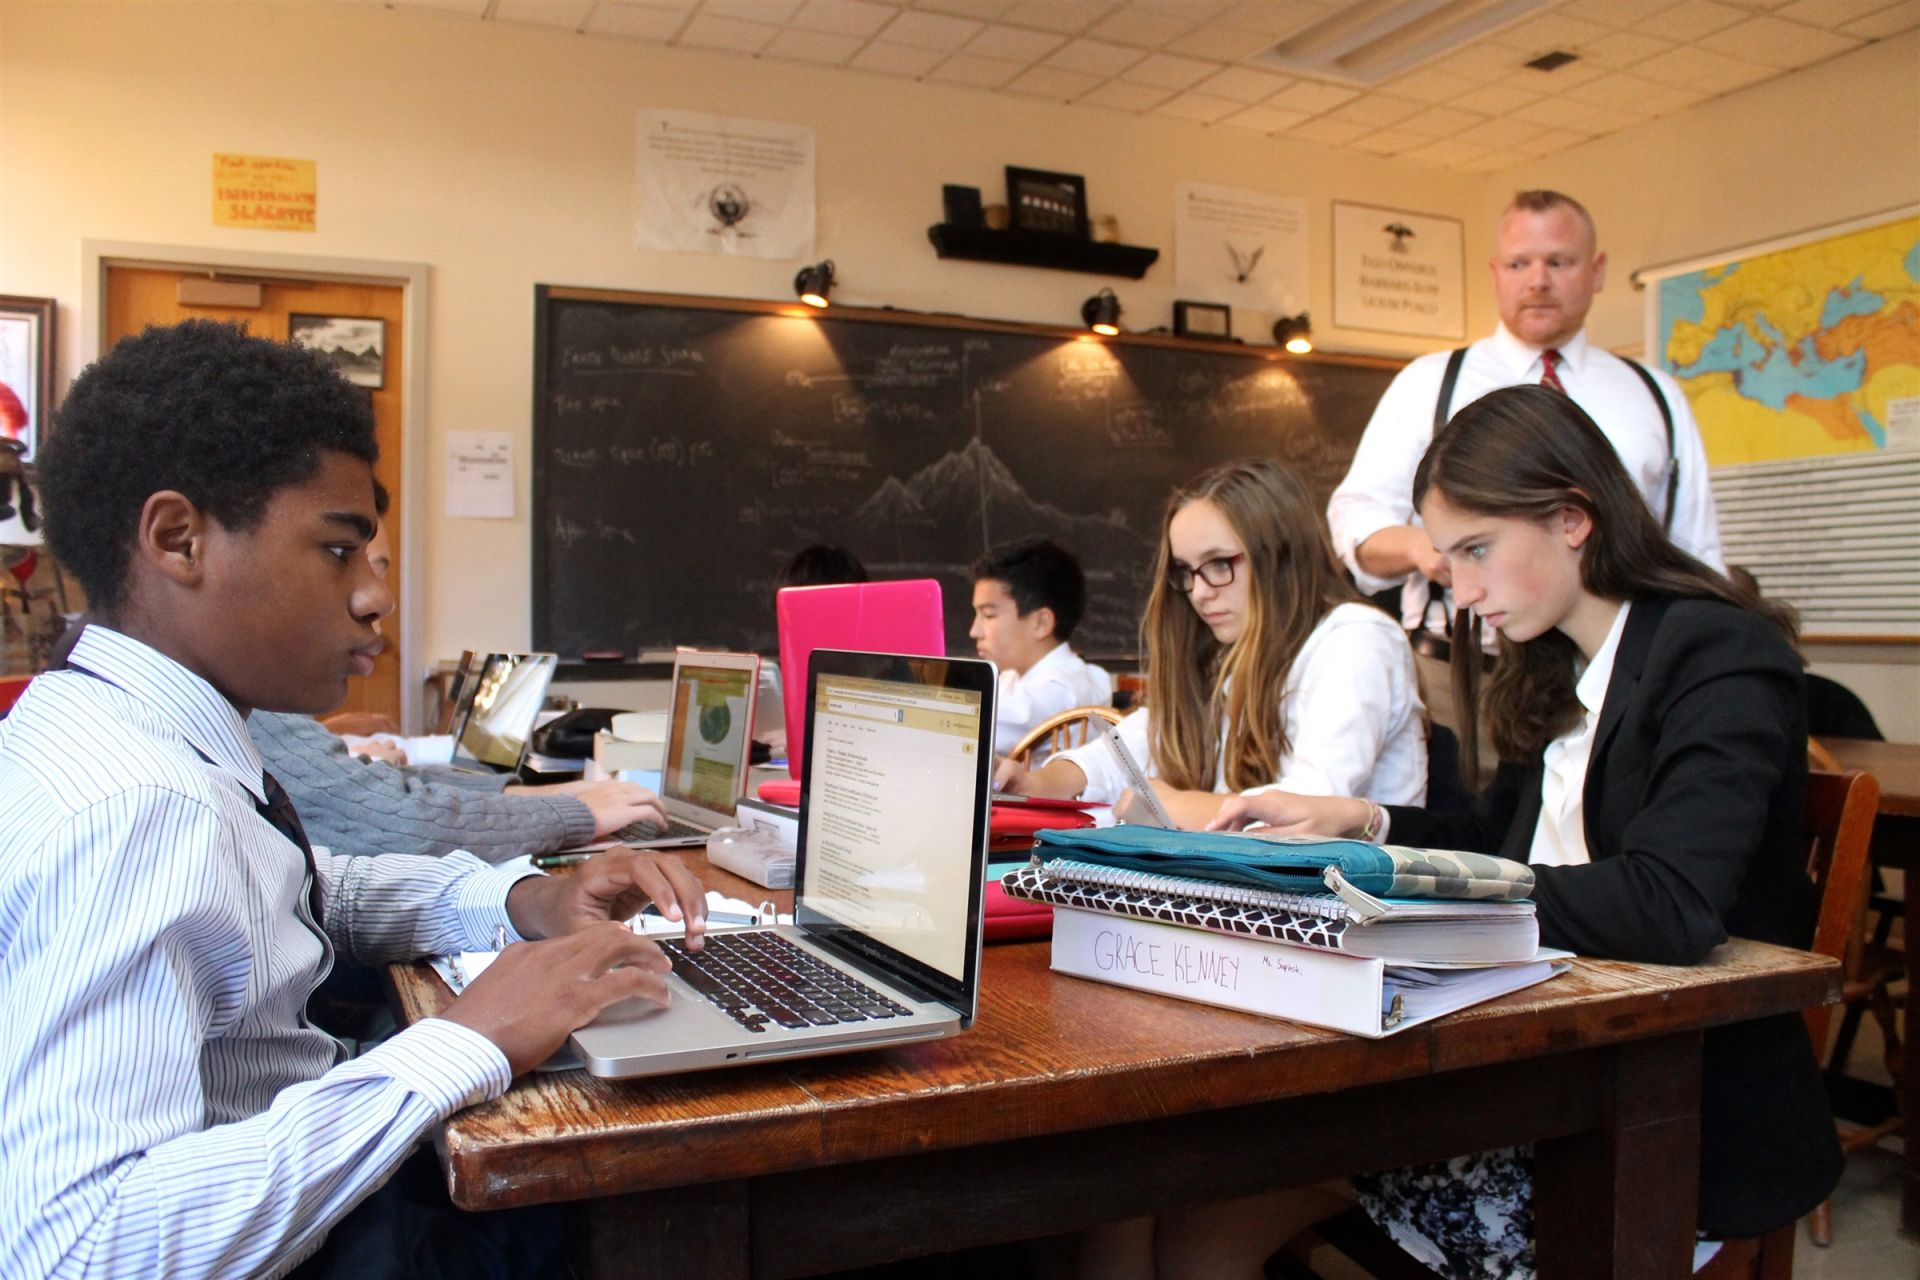 Eighth graders take Ancient History, where they explore the evolution of democracy from its origins in Greece and Rome. Through daily discussion, research, and writing, students develop an understanding of how socio-economic and political factors created change within various societies.